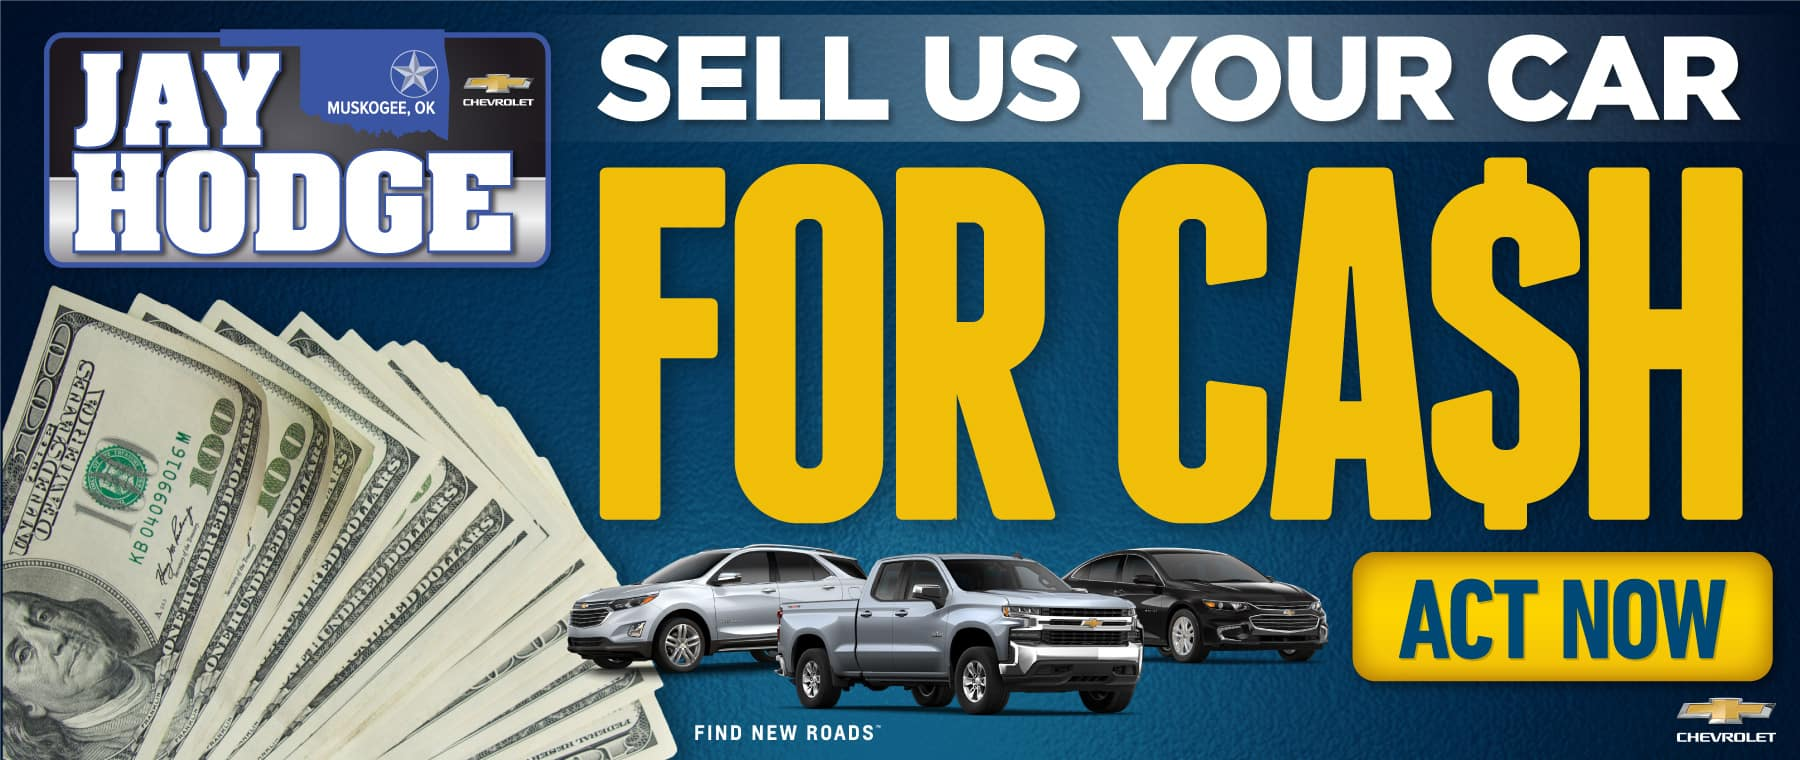 Sell Us Your Car for CASH - Act Now